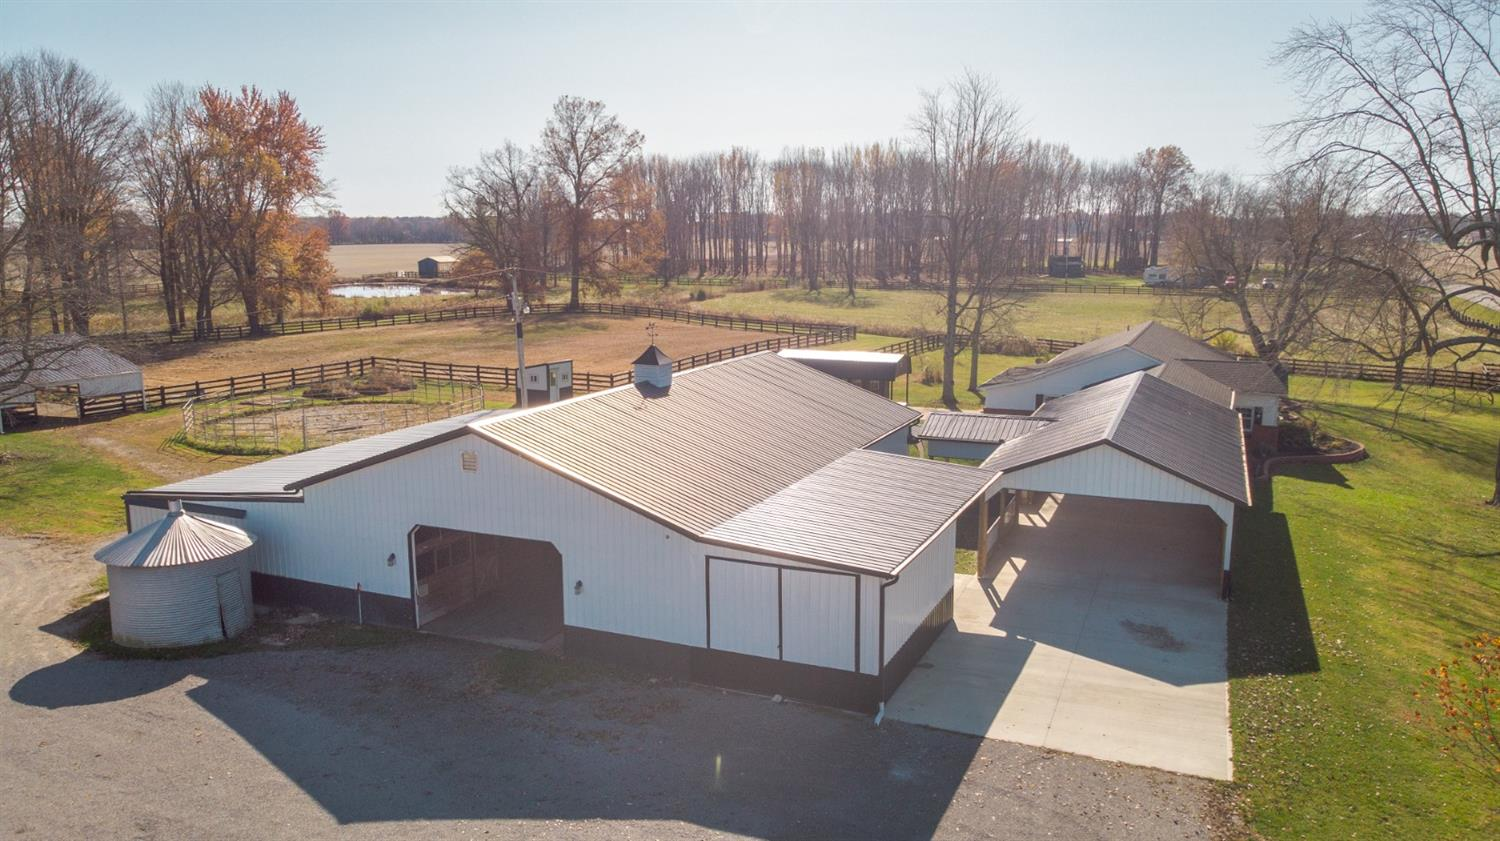 Property for sale at 12666 Liming Van Thompson Road, Mt Orab,  Ohio 45154